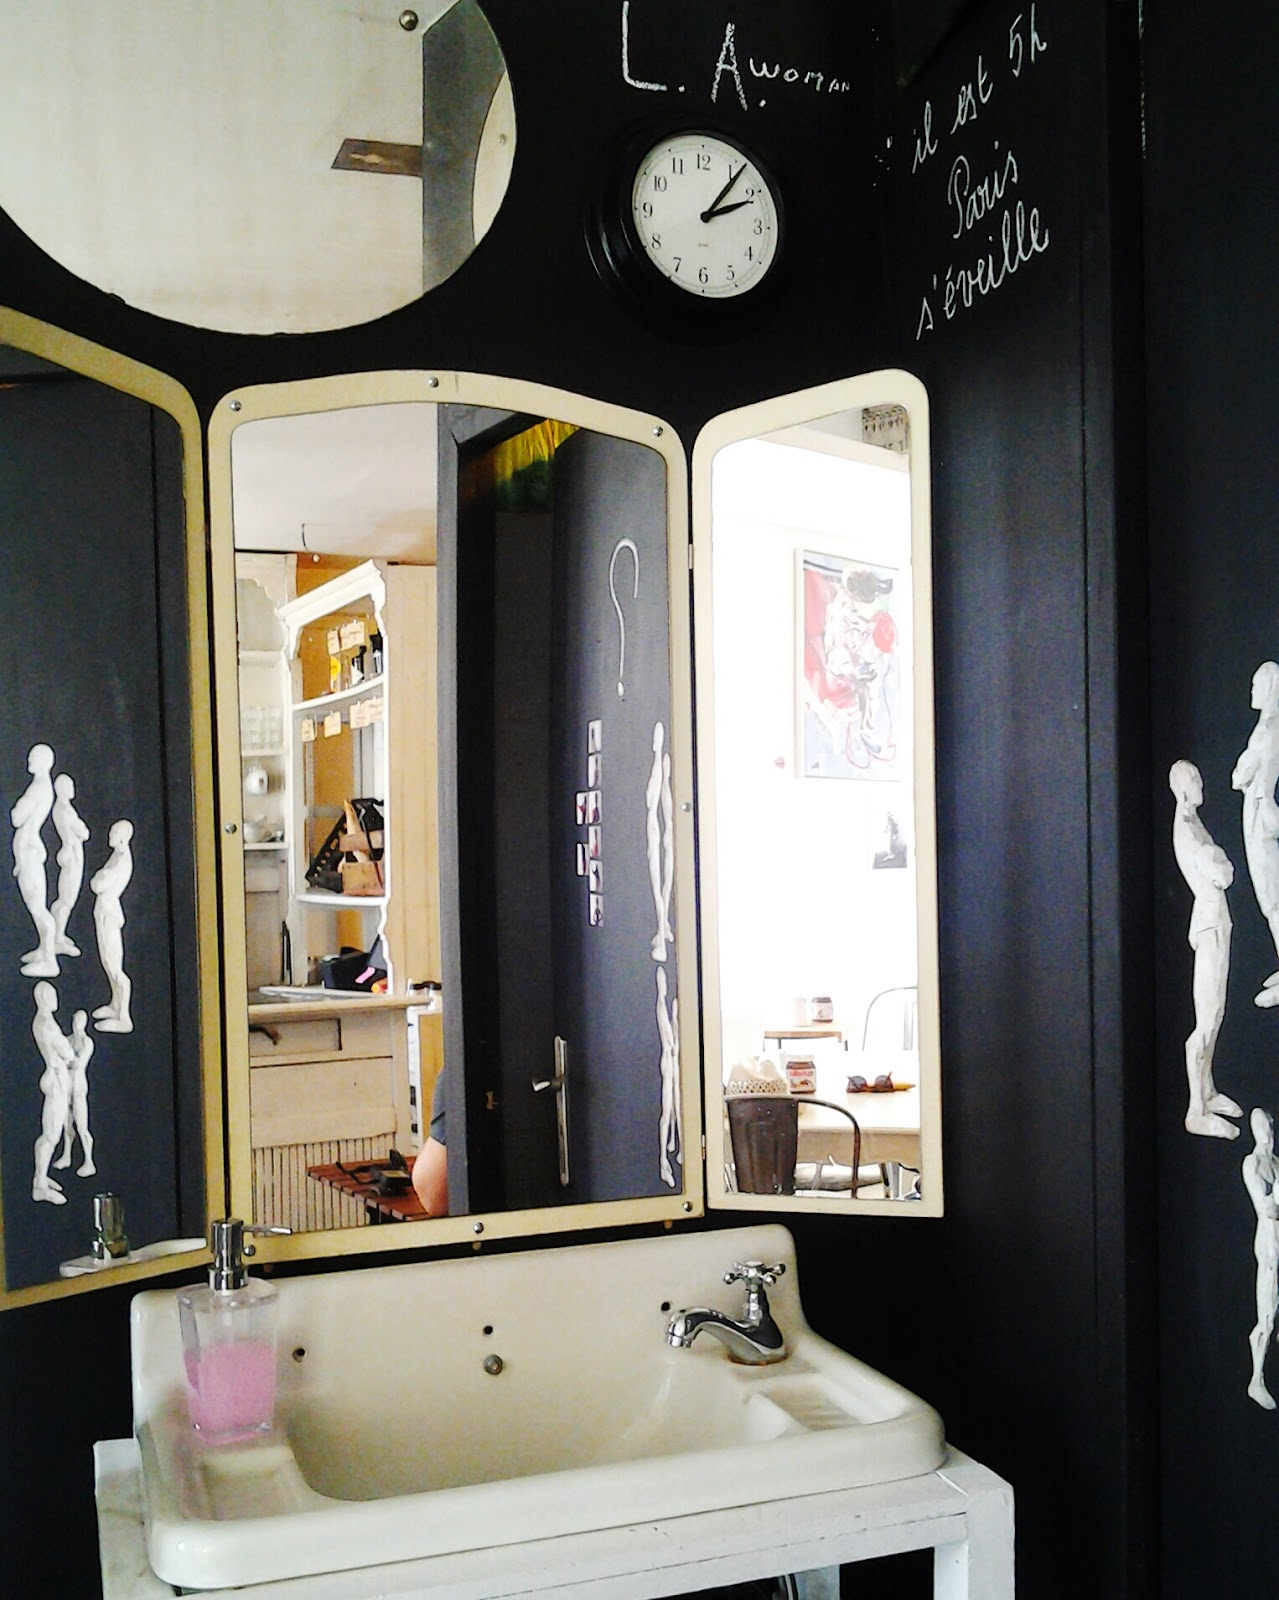 The unexpected space - lavatory right in the main room - love concept.